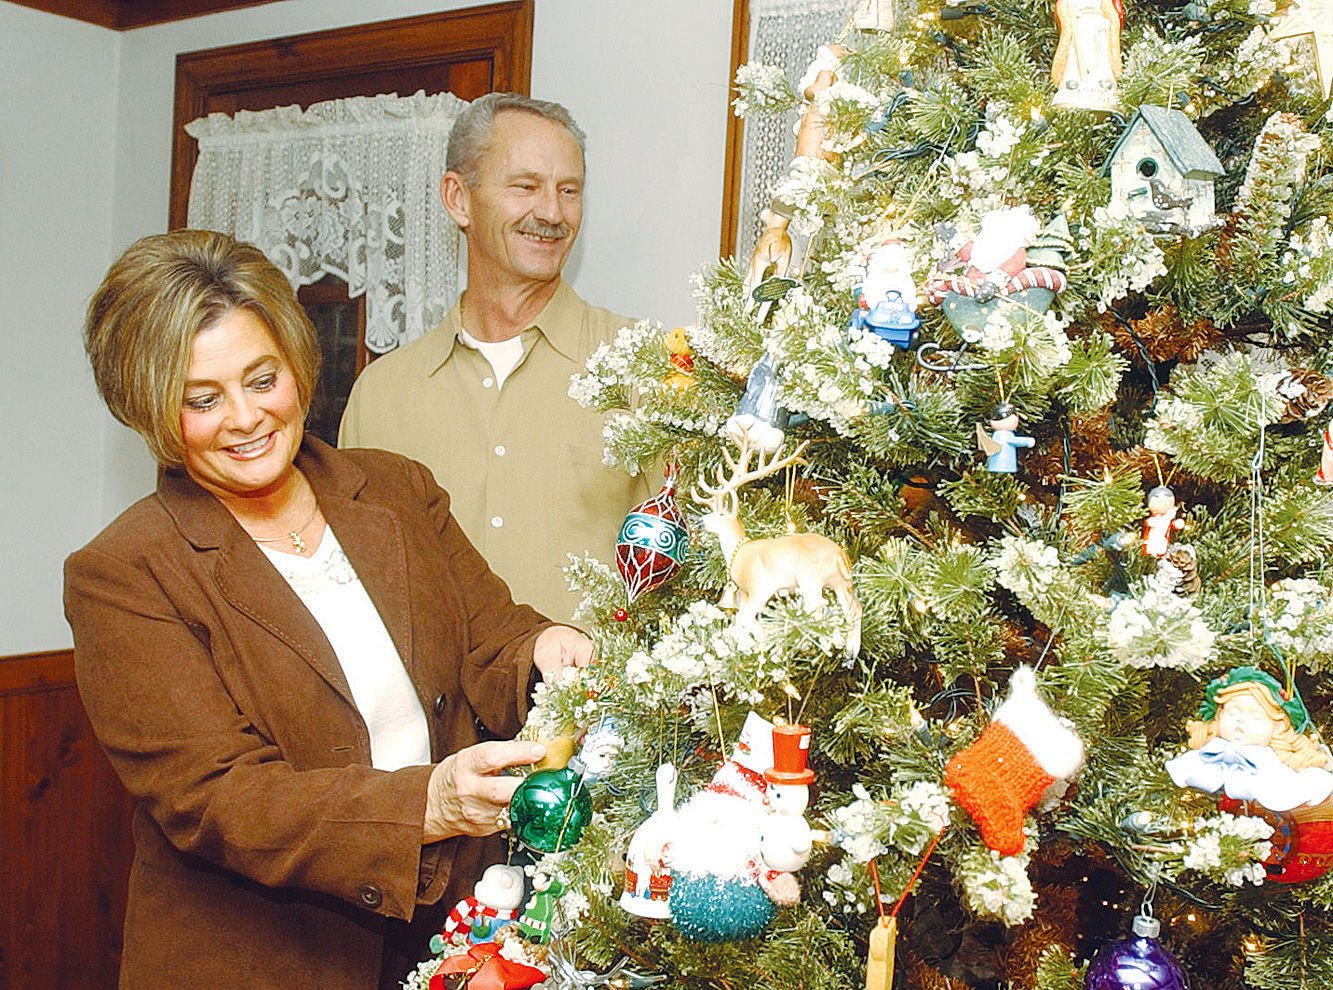 Janice And Rocky Young Of Bismarck Put The Finishing Touches On One Of The  Many Christmas Trees In Their Home. Their Home Will Be Part Of The Holiday  Tour ...